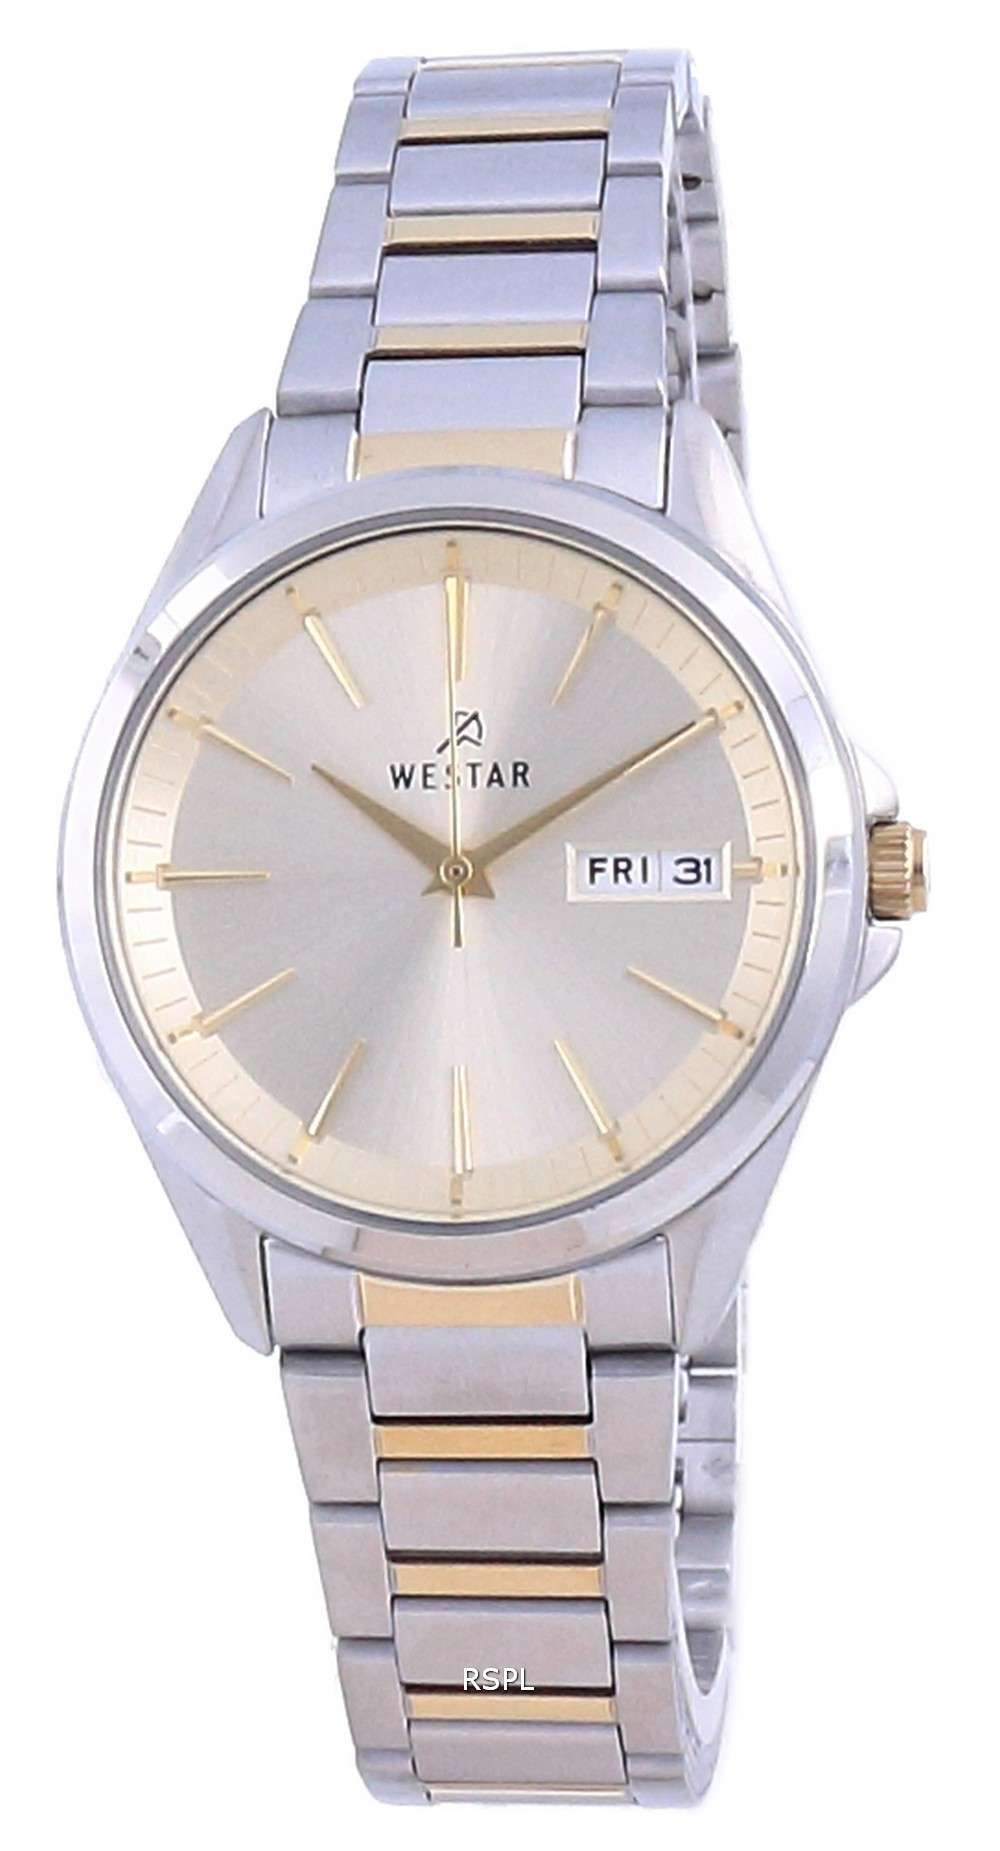 Westar Champagne Dial Two Tone Stainless Steel Quartz 40212 CBN 102 Reloj para mujer